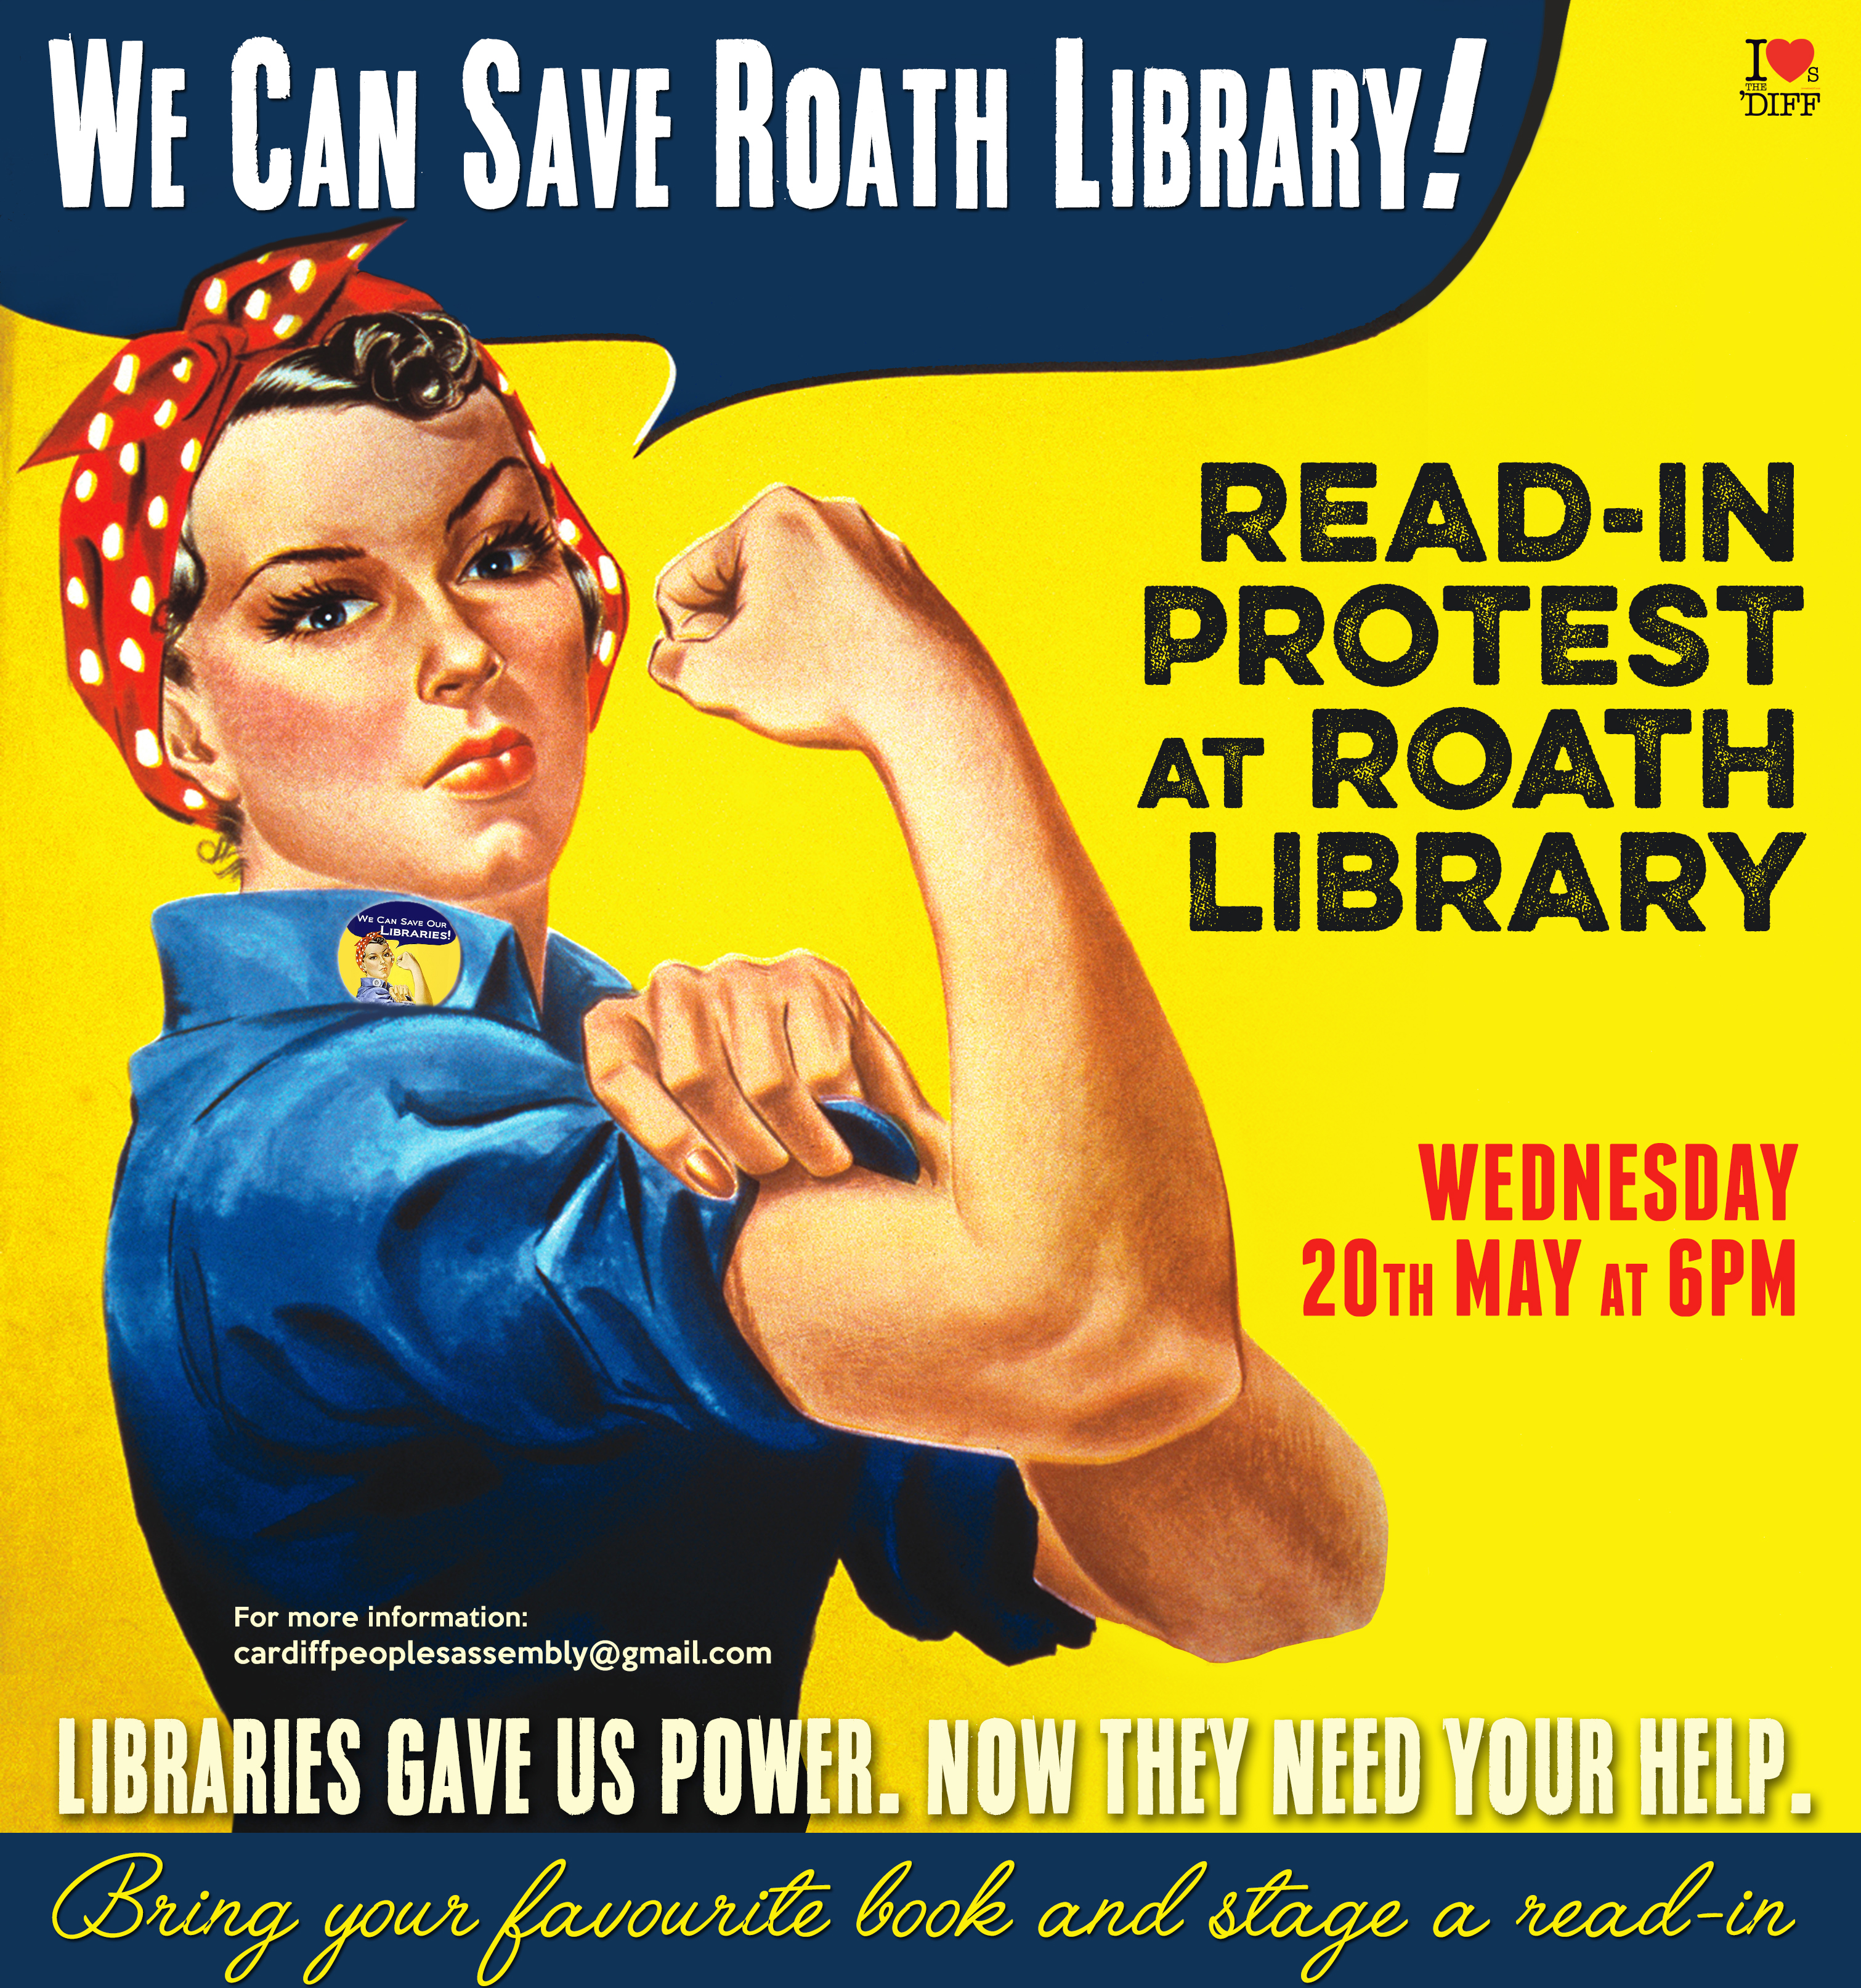 We can save Roath Library poster 20 May protest